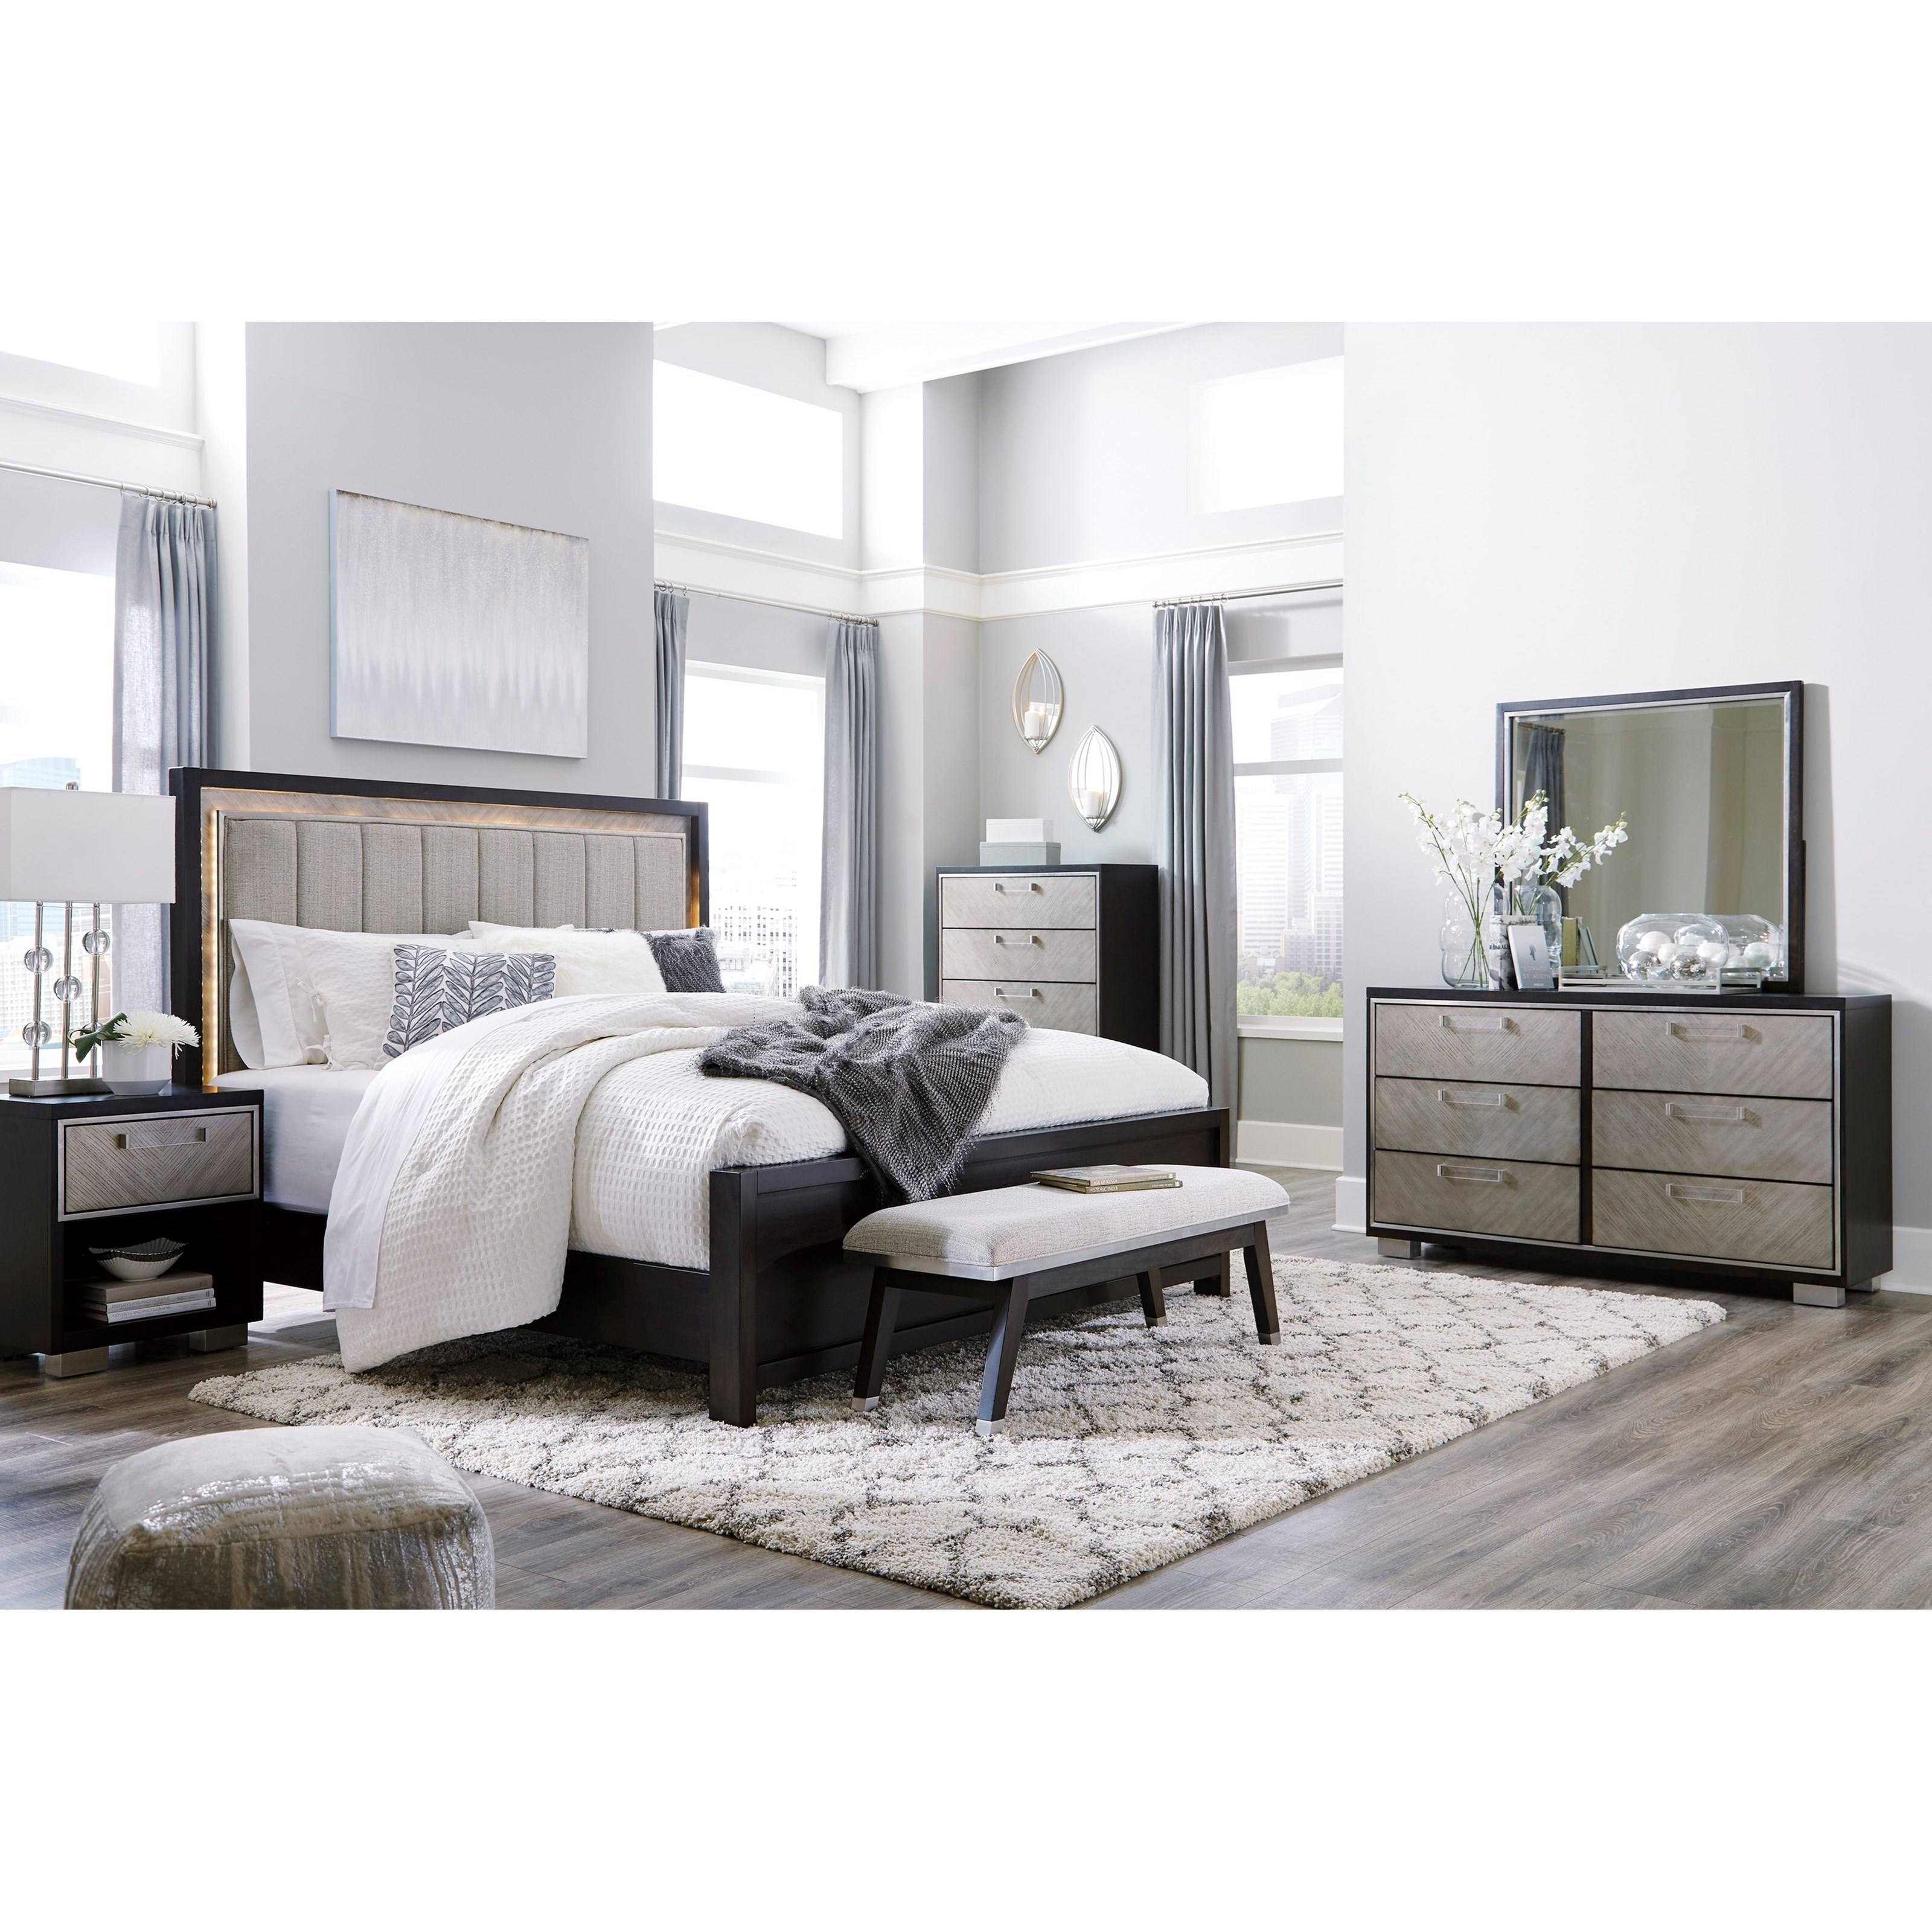 Maretto King Bedroom Group by Signature Design by Ashley at Northeast Factory Direct